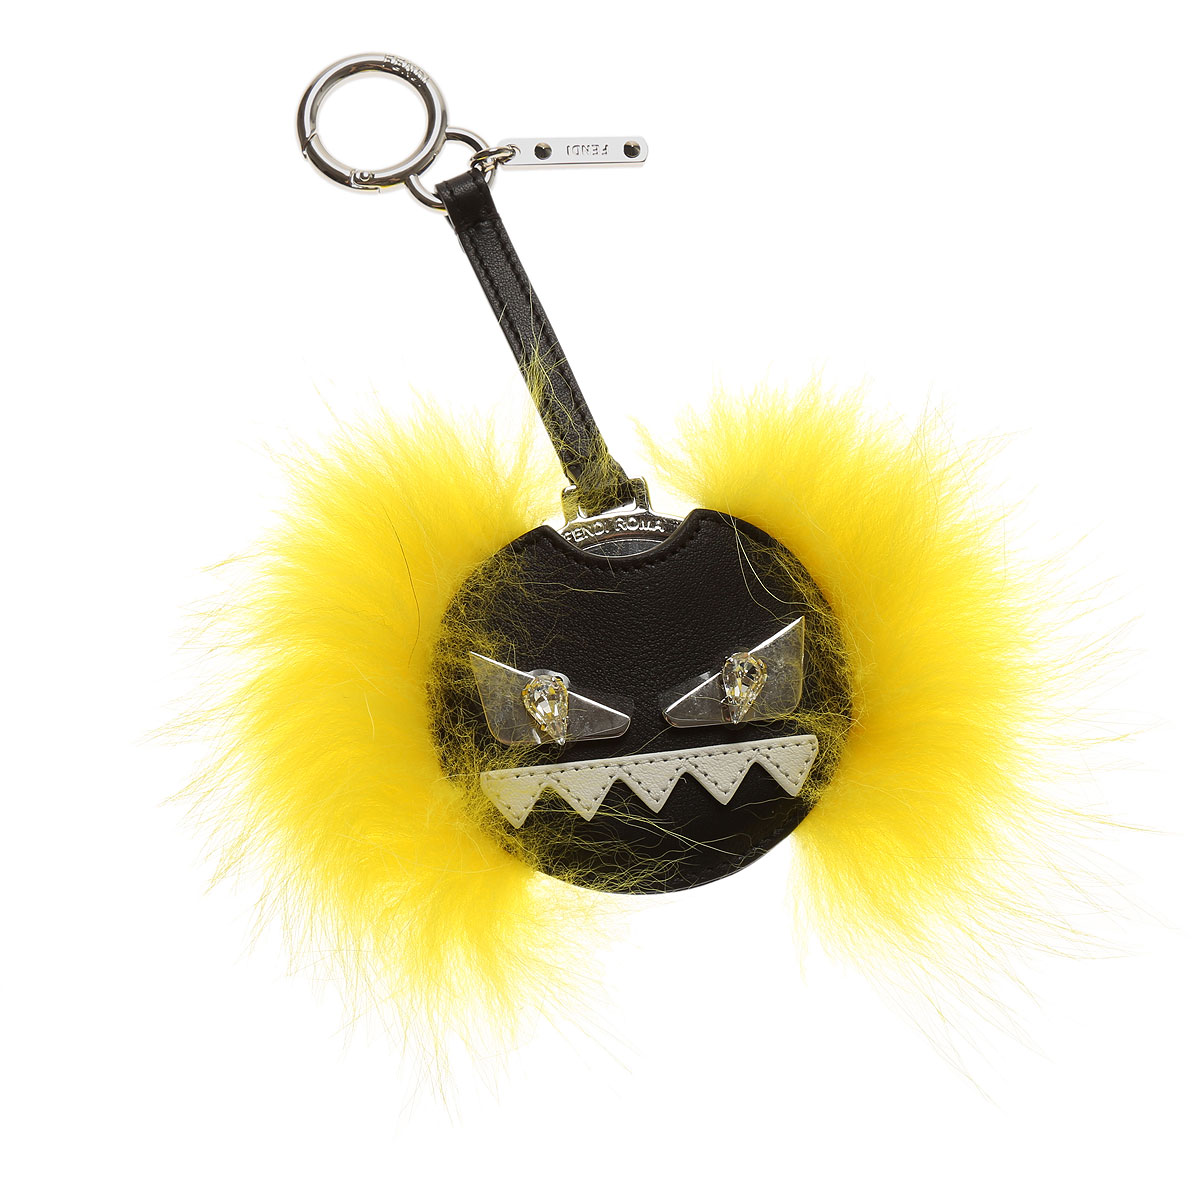 Image of Fendi Key Chain for Women, Key Ring On Sale, Yellow, Leather, 2017